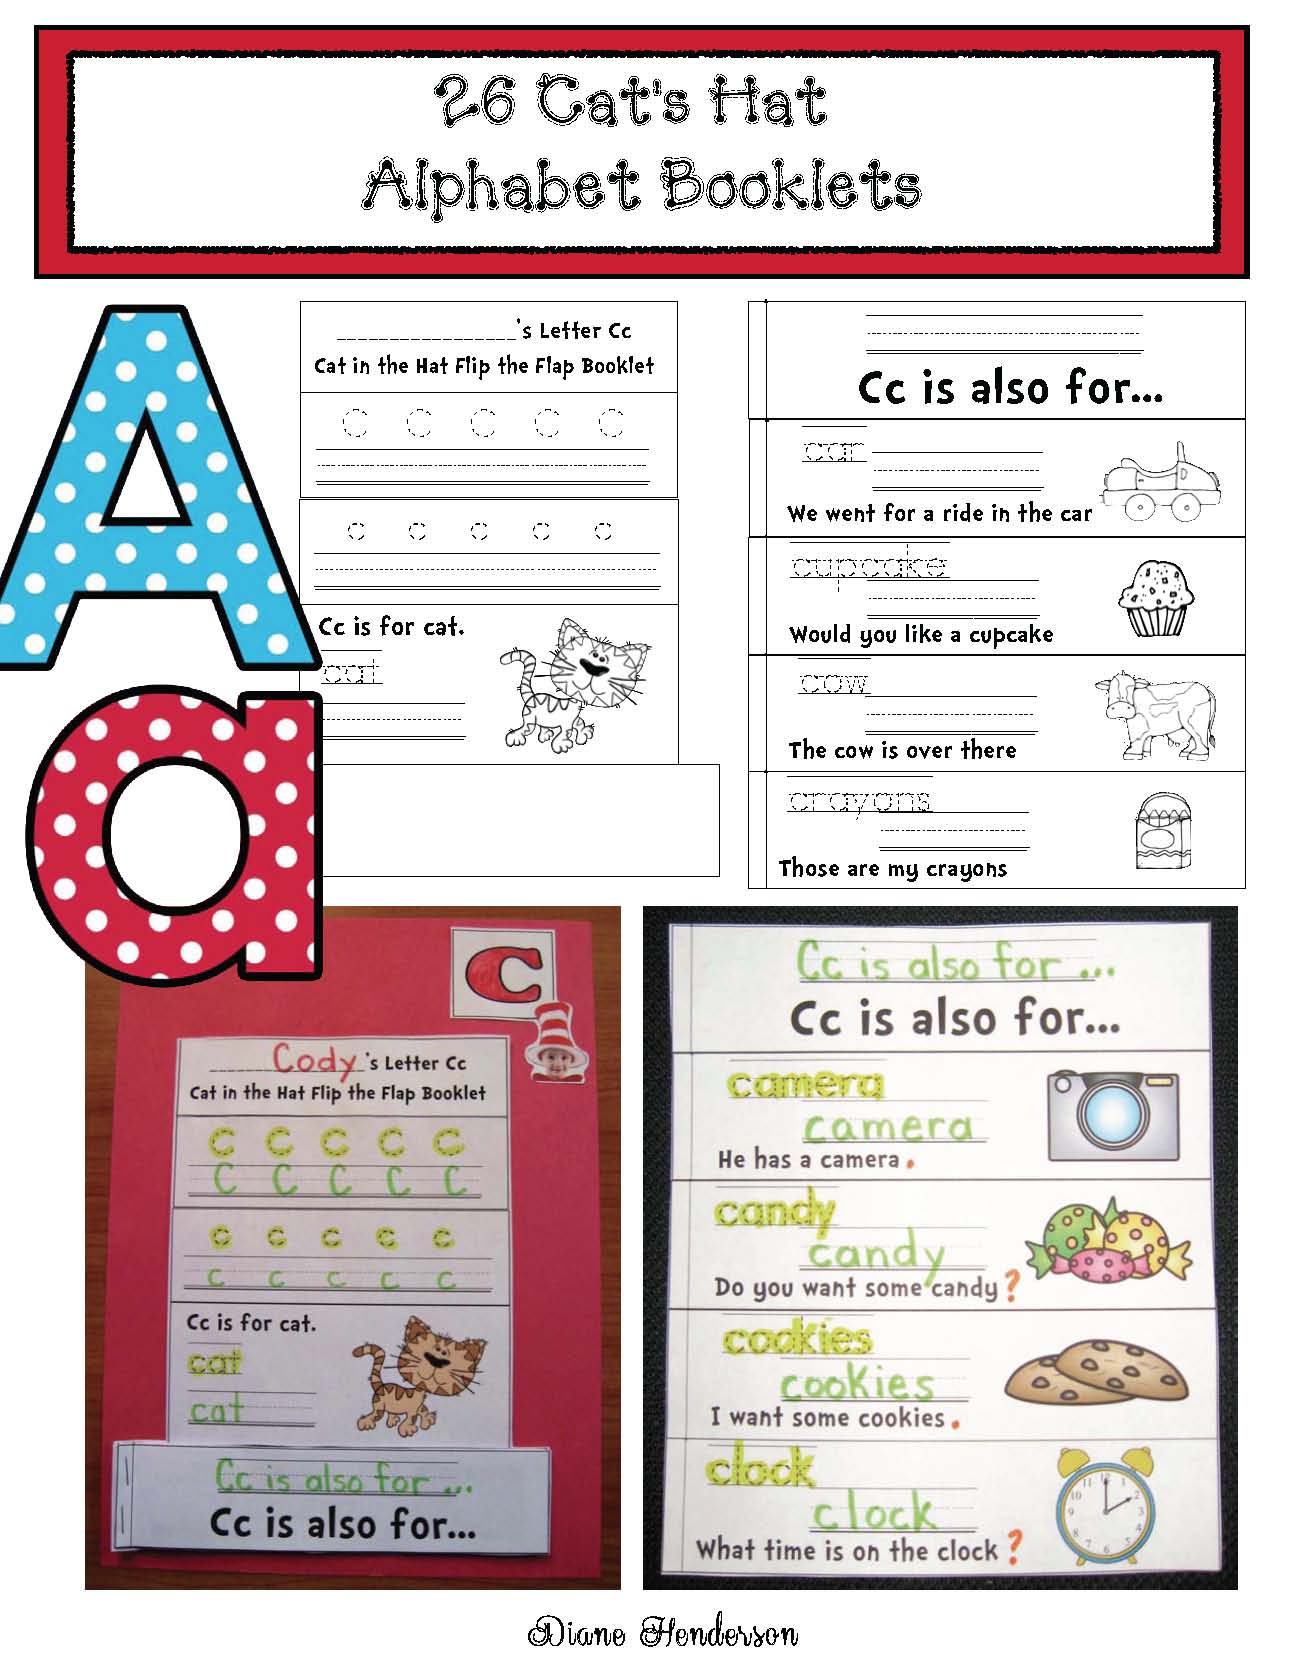 alphabet booklets, emergent reader booklets, 10 frames, 10 frame activities, seuss crafts, seuss writing prompts, seuss activities, cat in the hat activities, cat in the hat crafts, word family activities